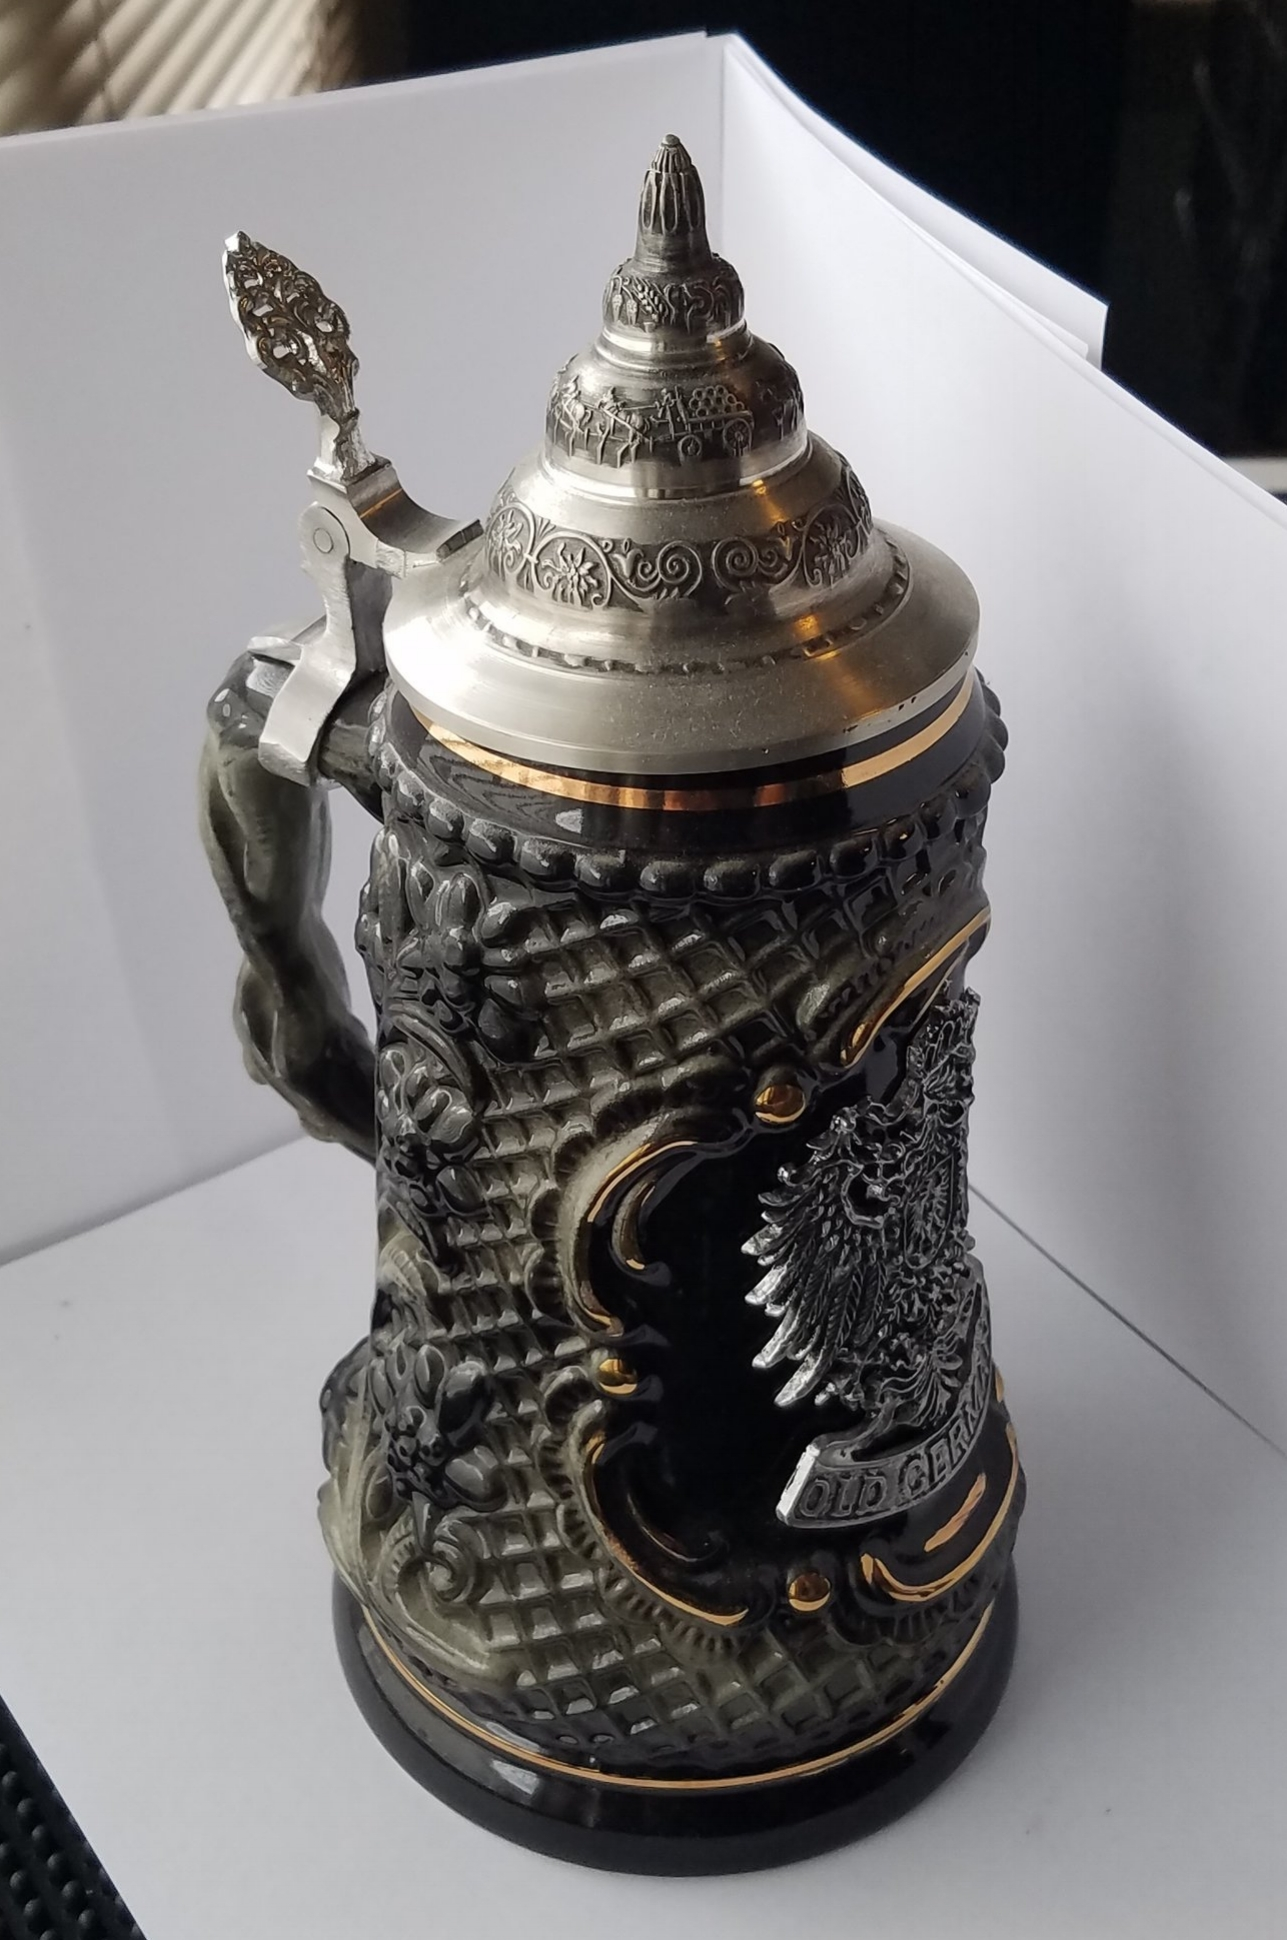 This stein is so large and glorious that it is busting out of my homemade light box